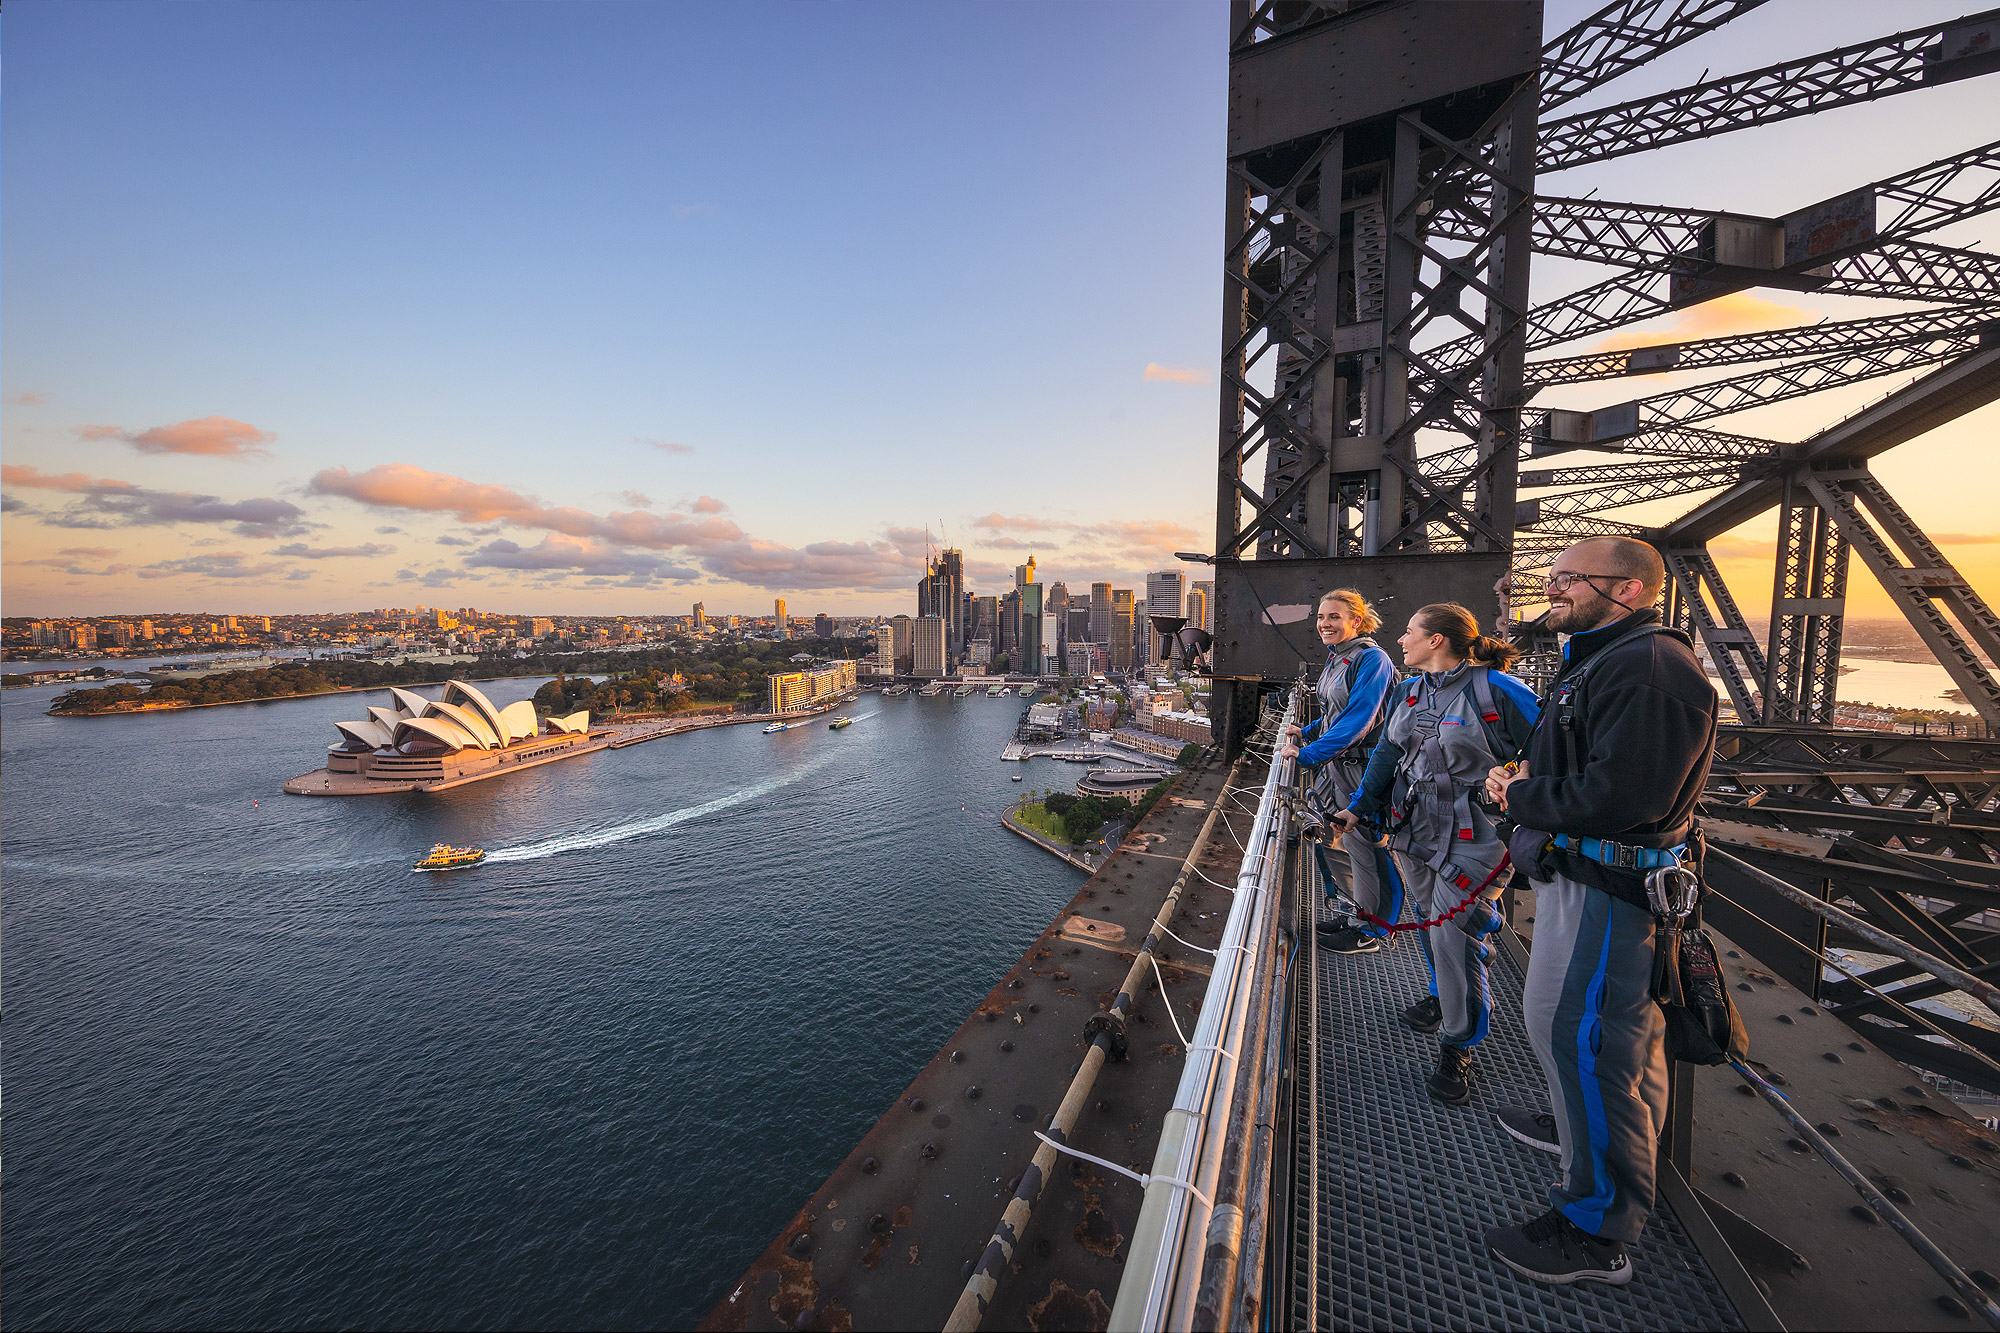 BridgeClimb, Sydney Harbour Bridge, Opera House